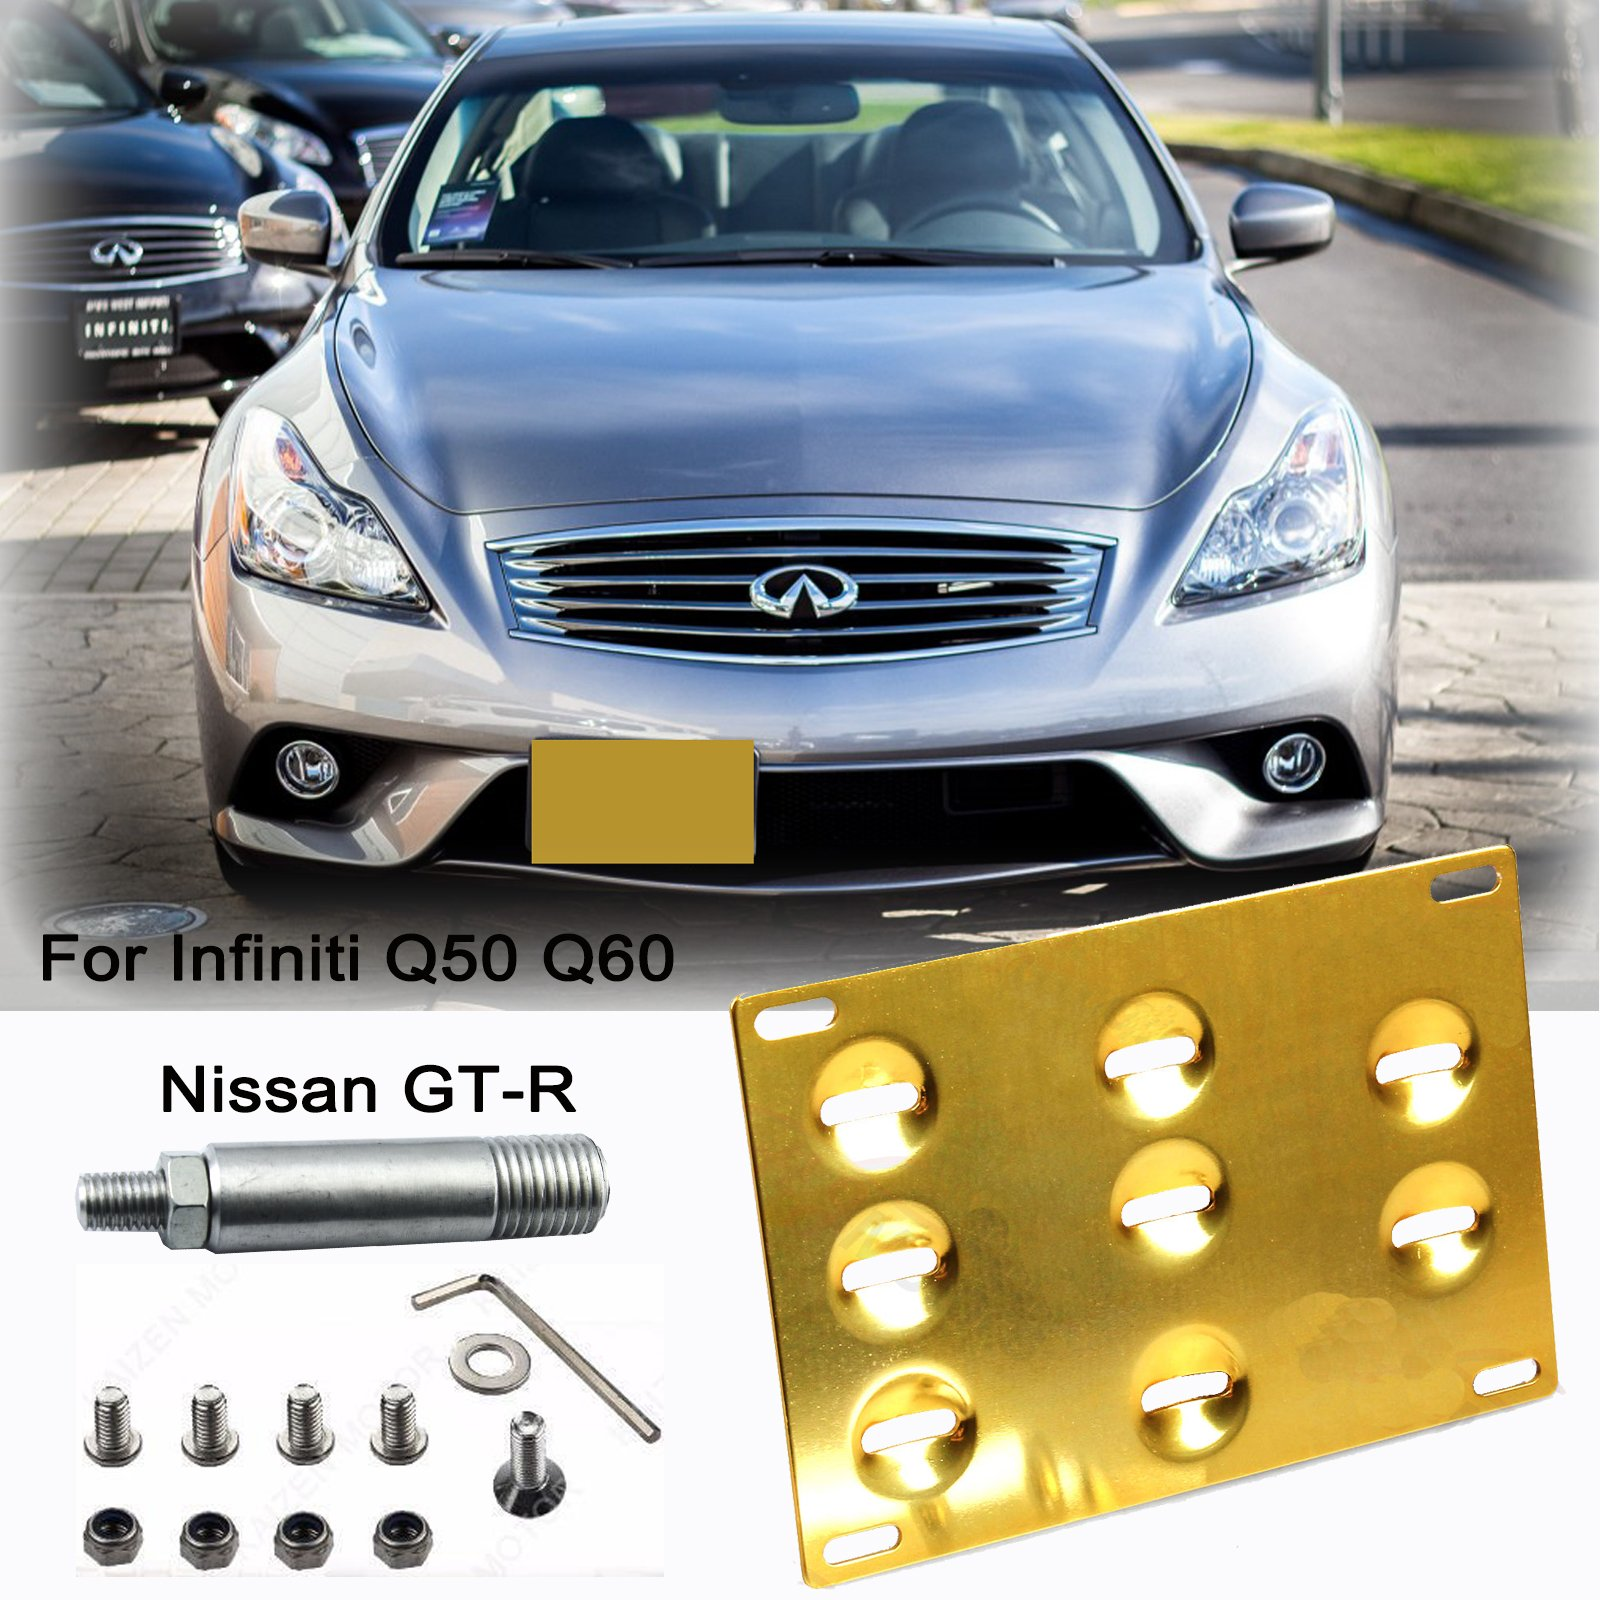 JDM Gold Track Racing Style Tow Hook for 2014-up Infiniti Q50 Q60